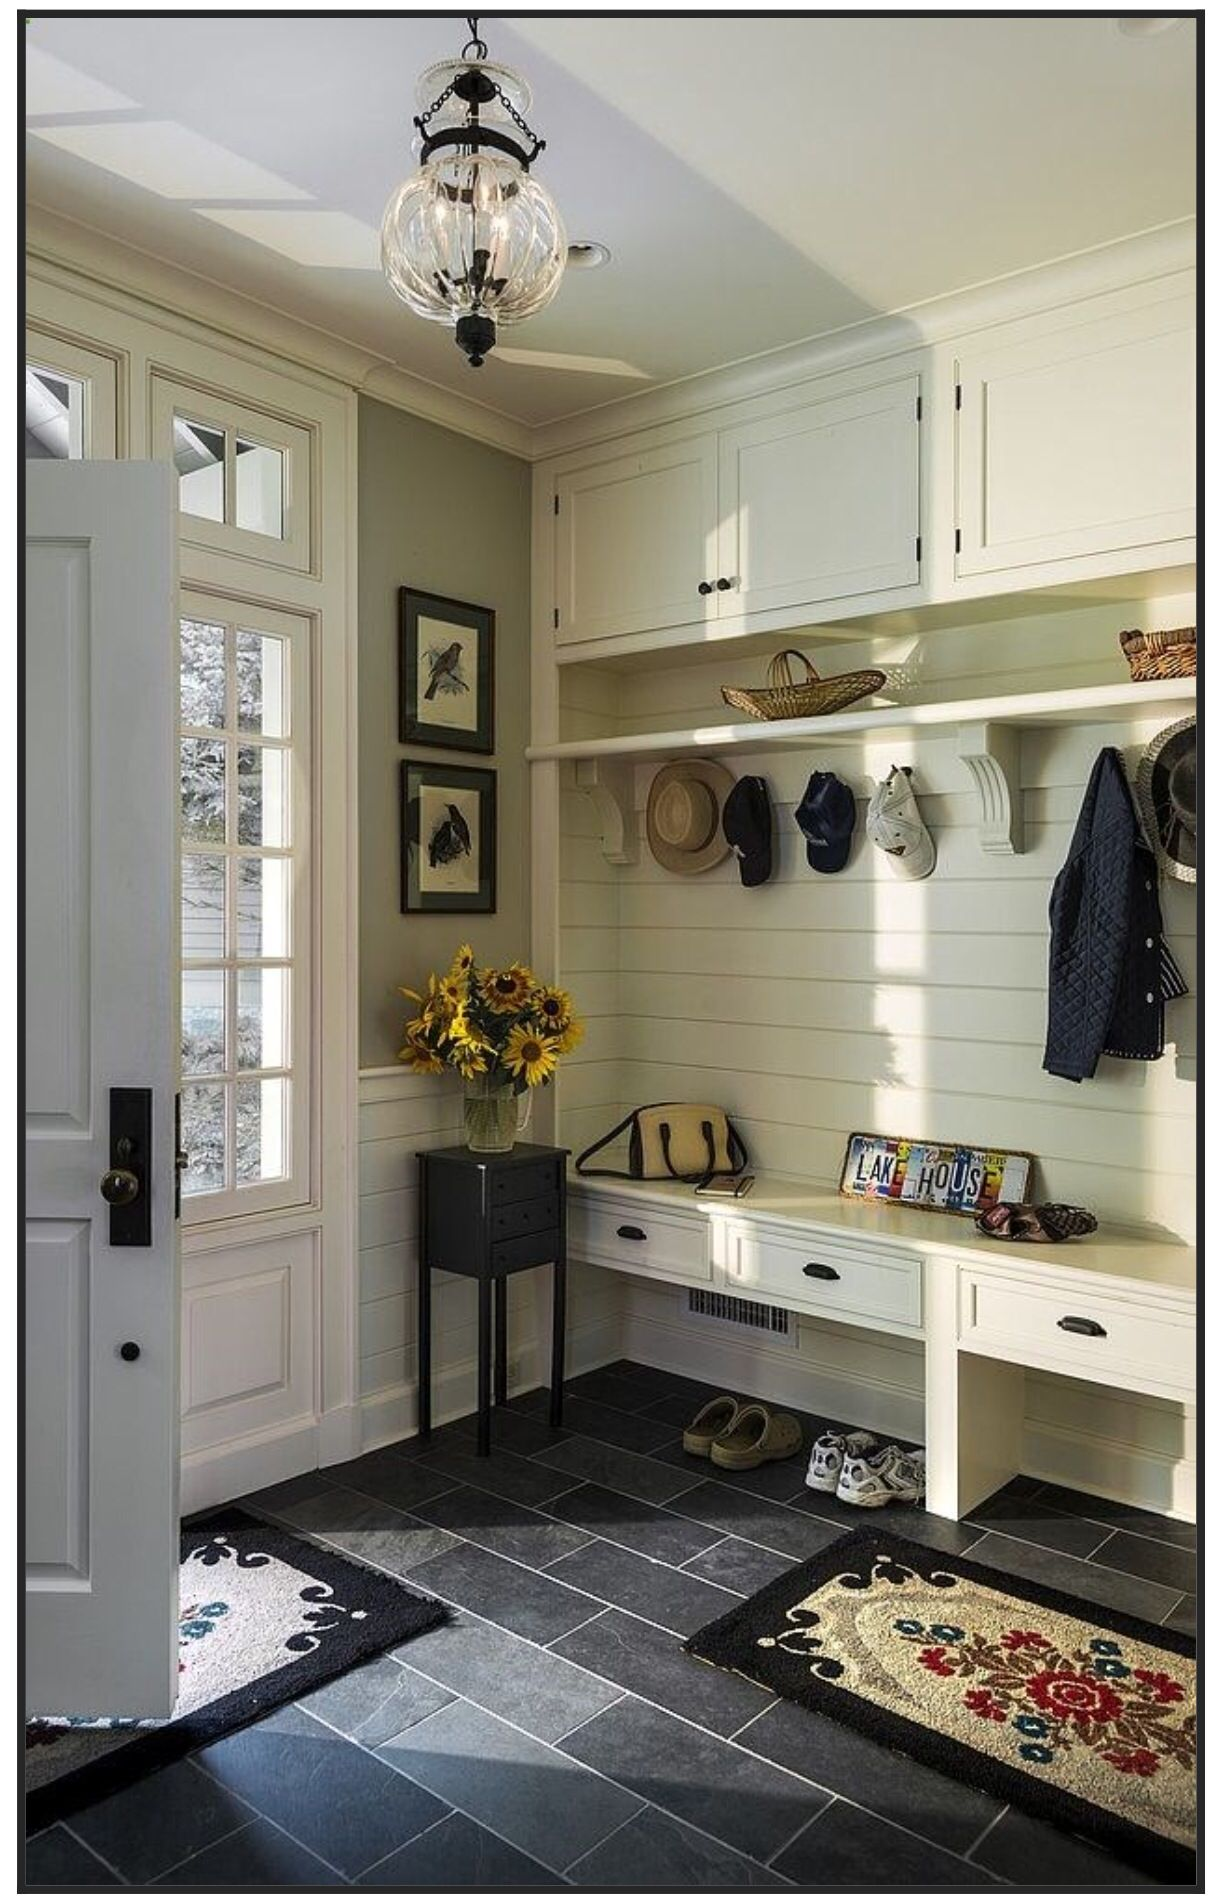 Lake House By Crisp Architects Mudroom Entry   Mud Room   Like The Narrow  Bench To Allow Room For Wall Space By The Door To Include The Small Console  Table ...